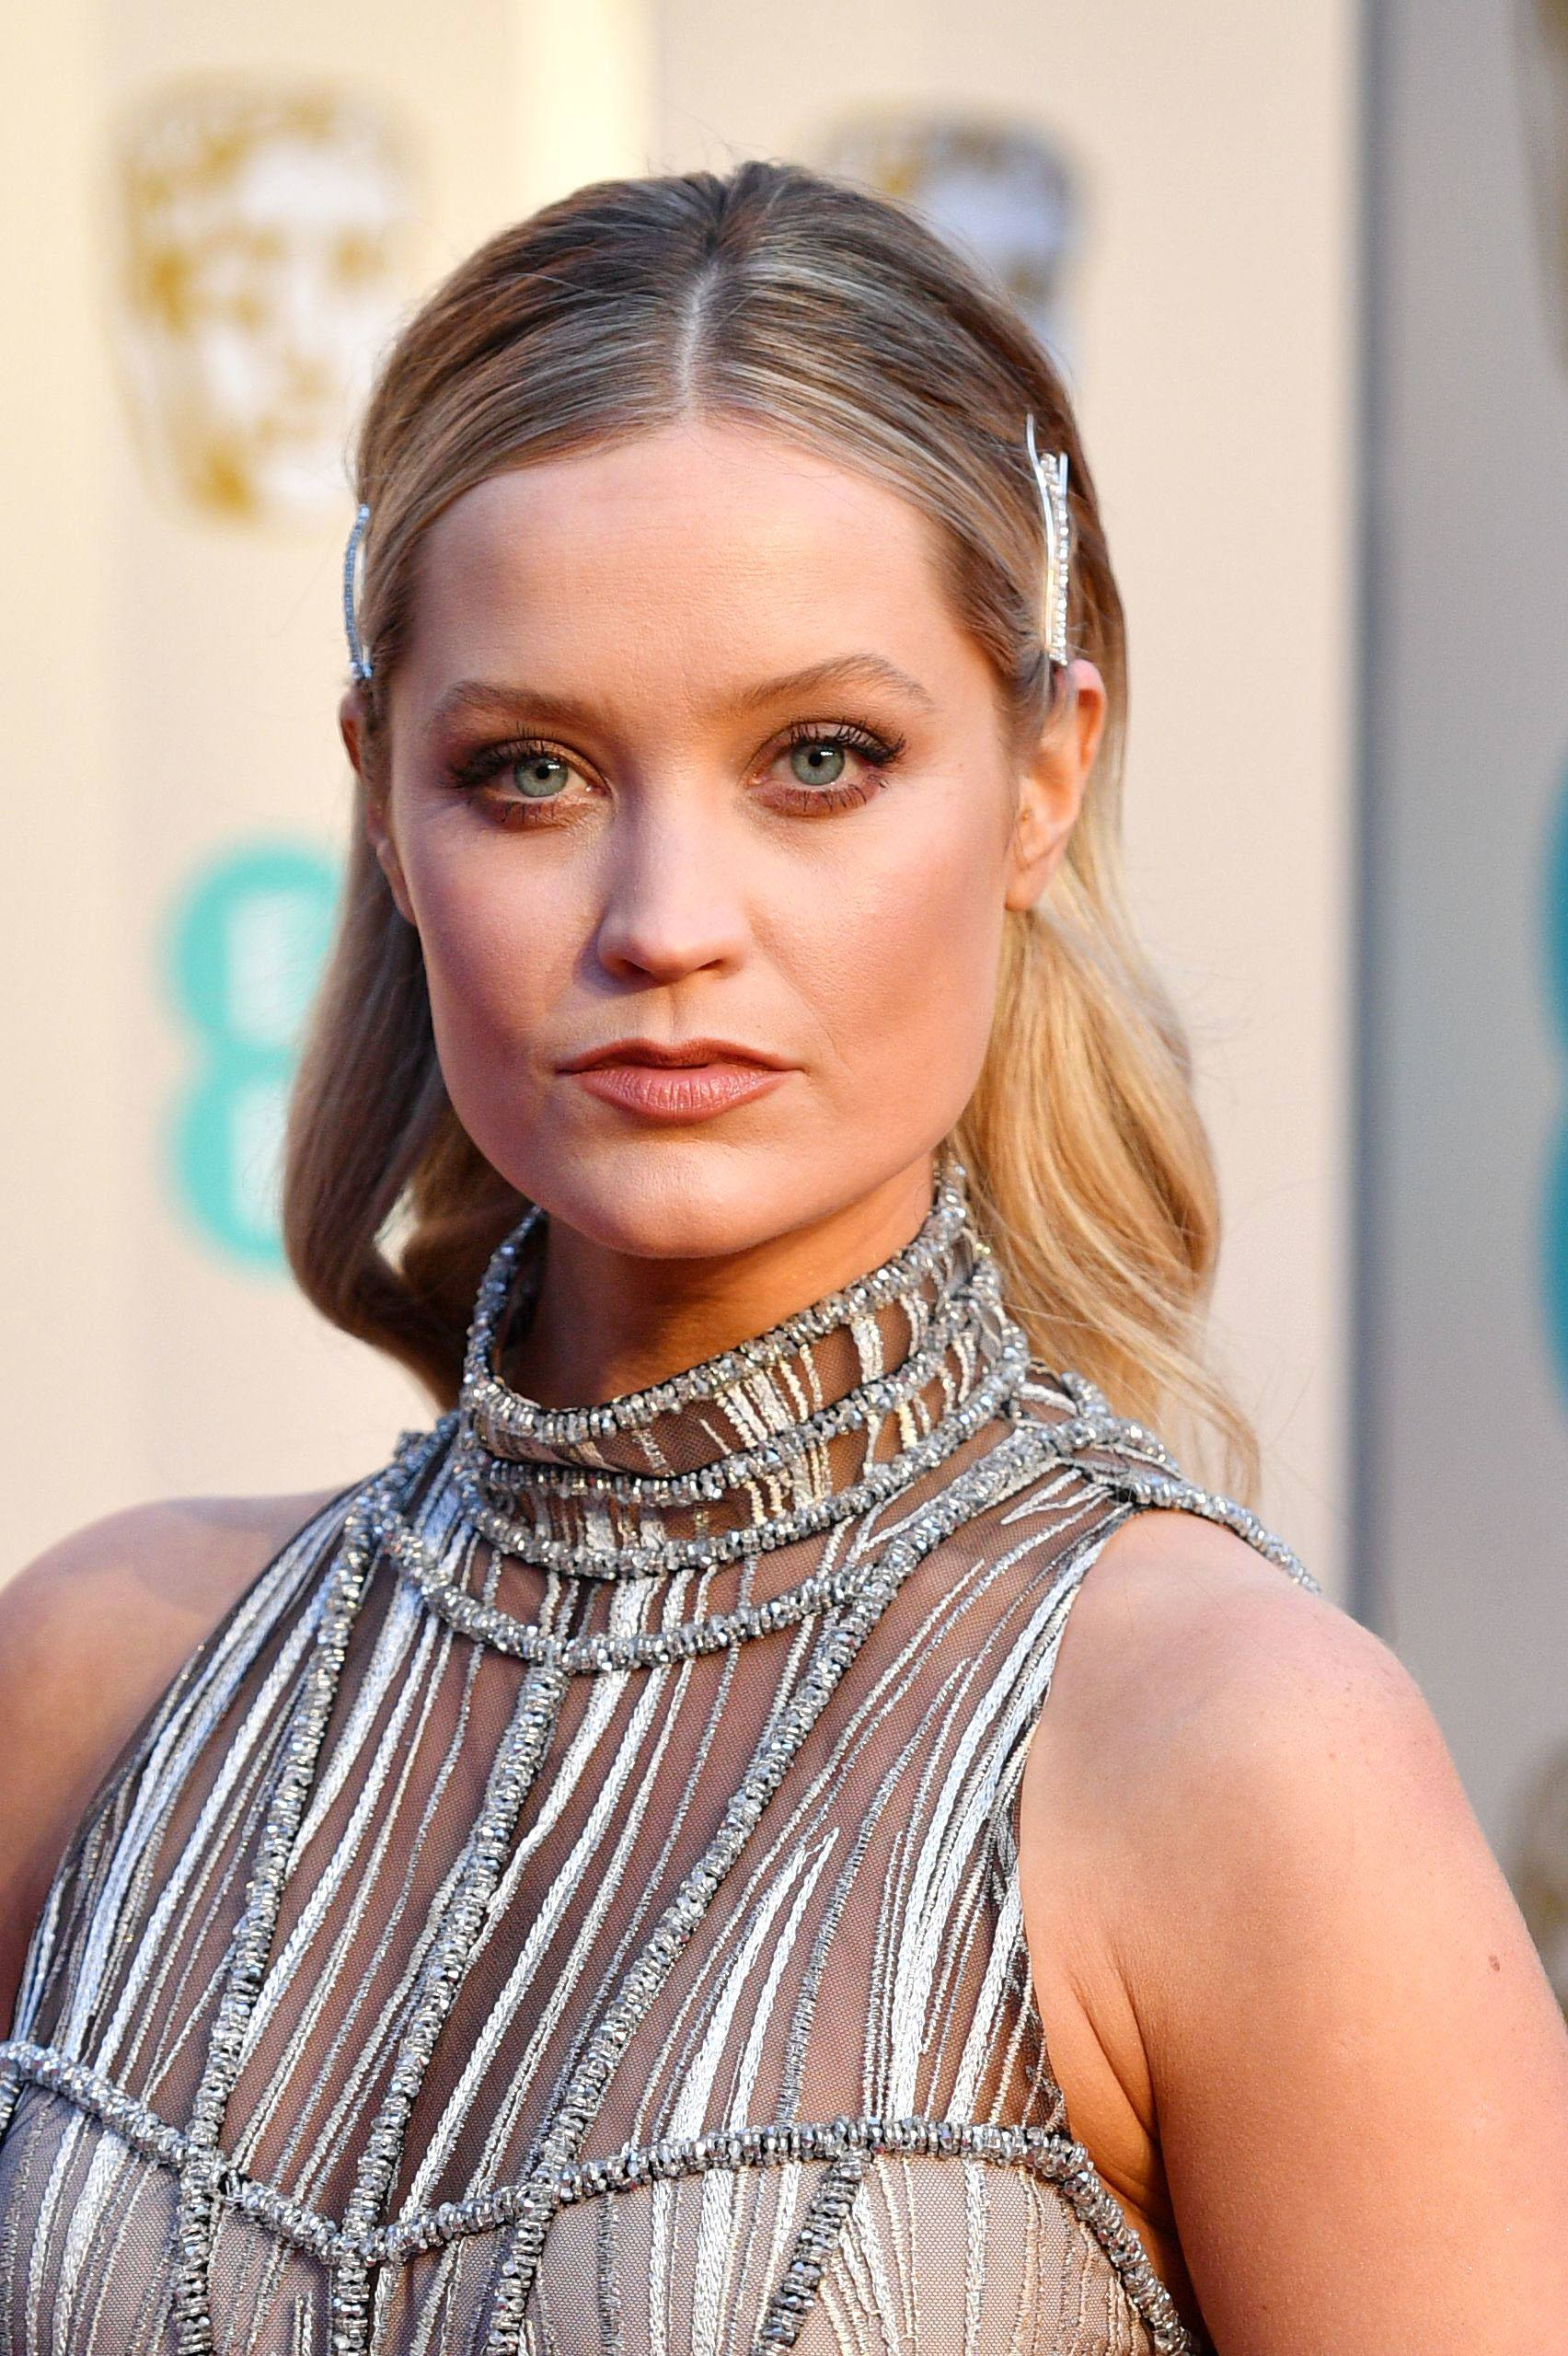 Red carpet hairstyles: Laura Whitmore with long wavy blonde hair pinned back with hair slides at the Baftas.